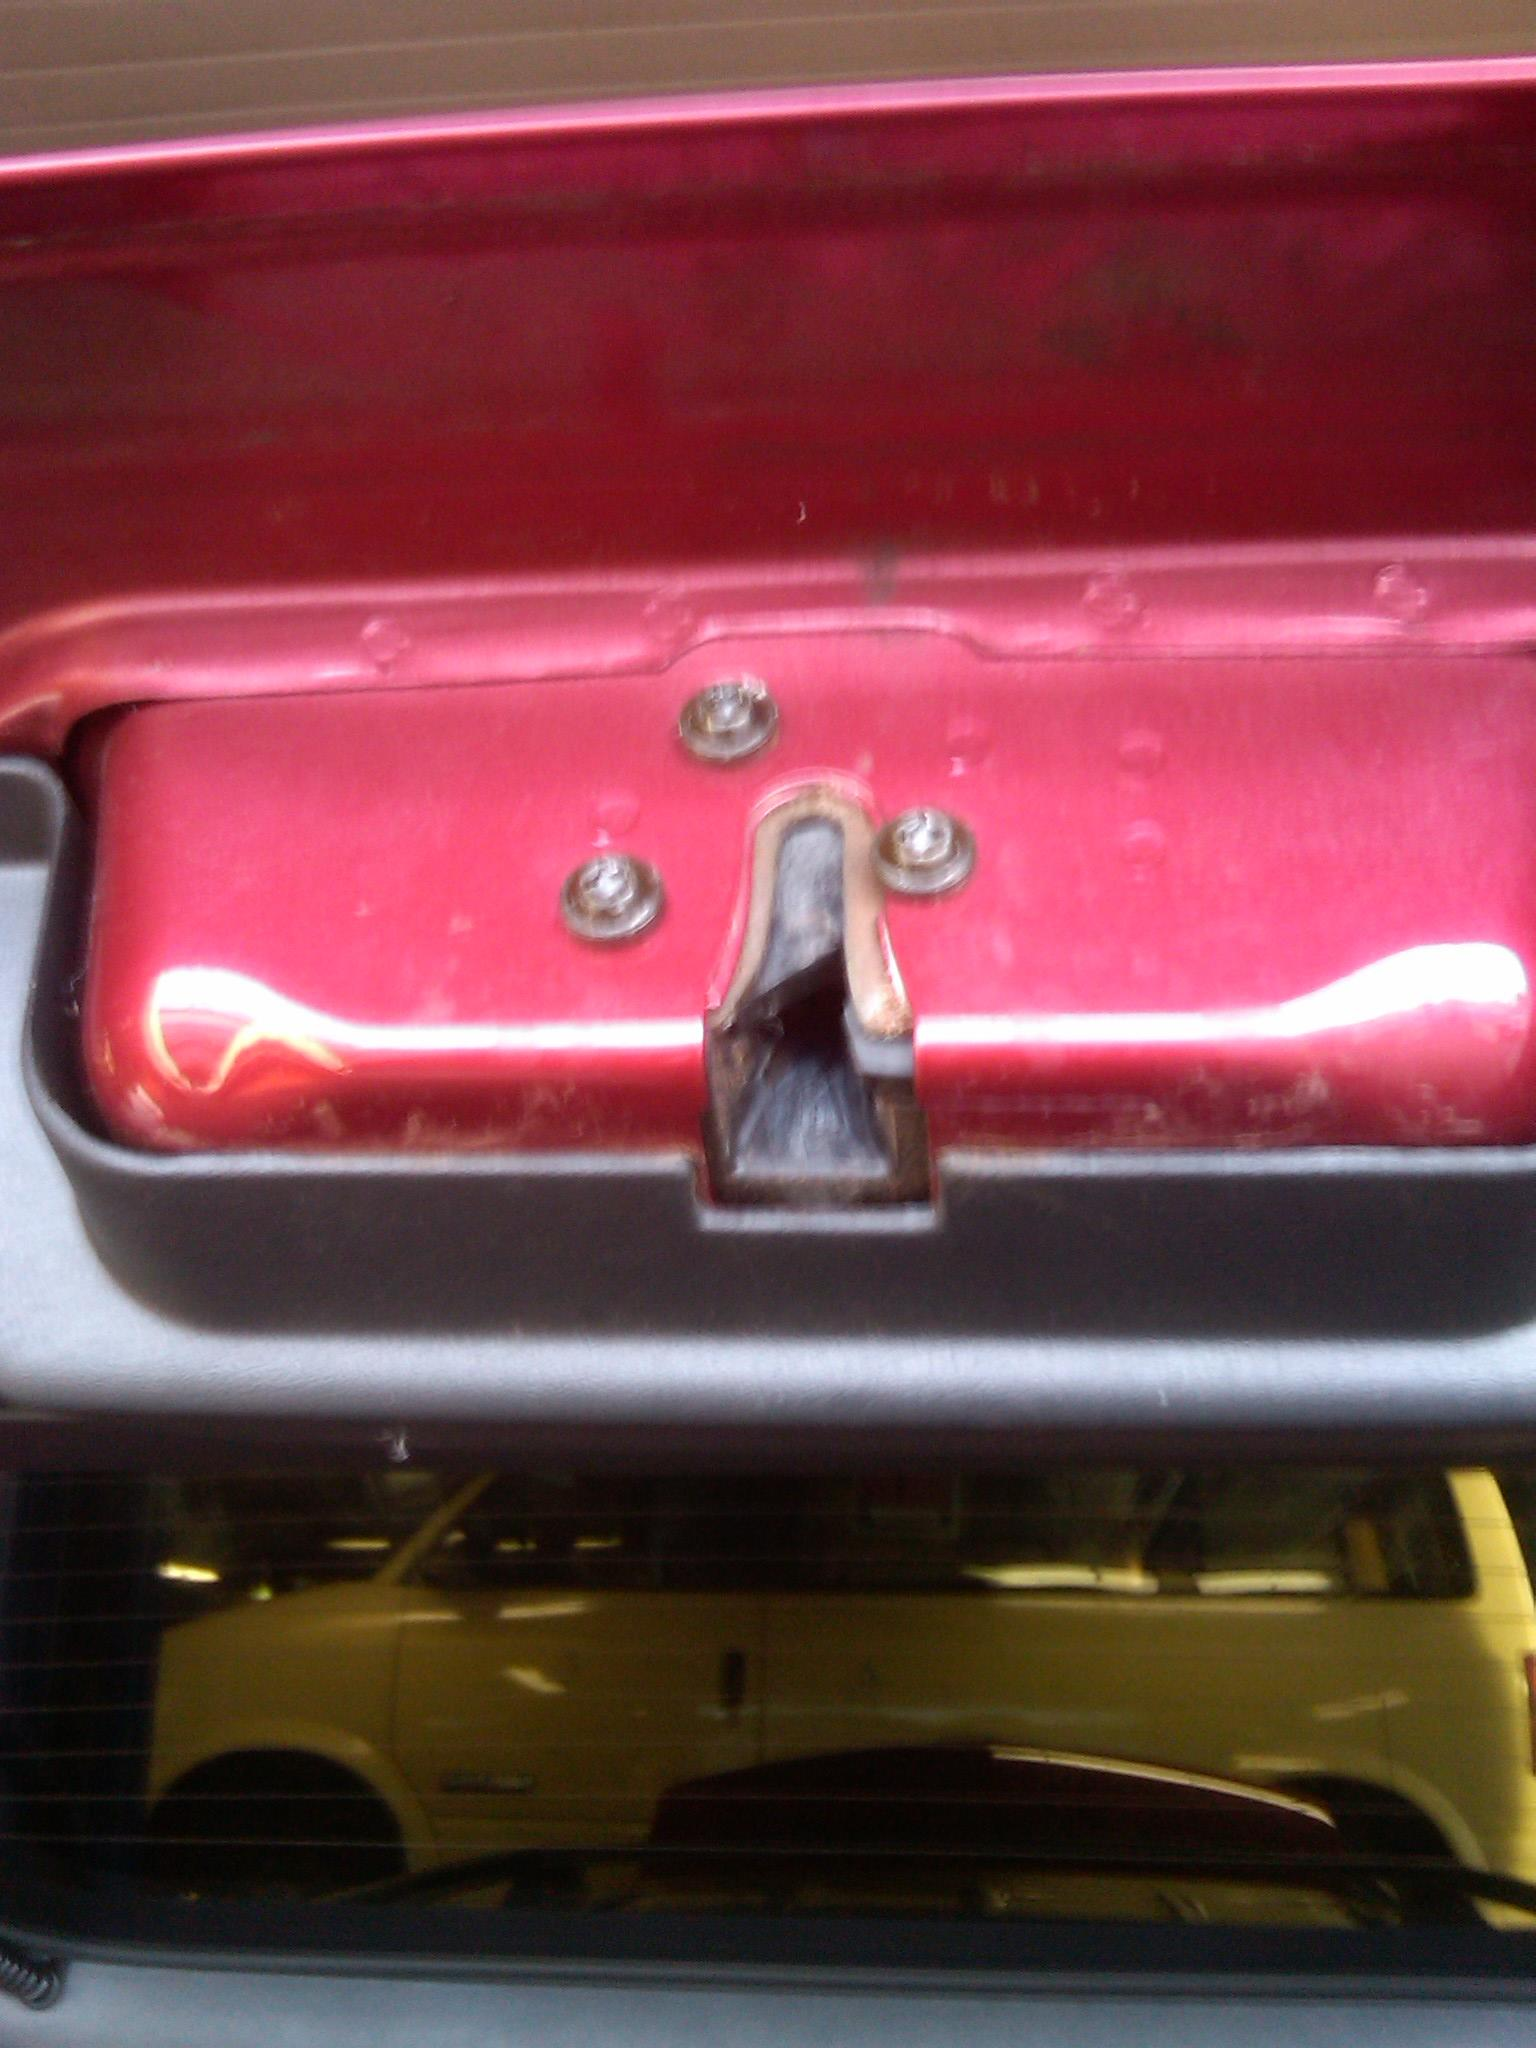 My 2000 Chevy Blazer Hatch Door Will Not Lock  I Had This Problem About 4 Years Ago And It Cost